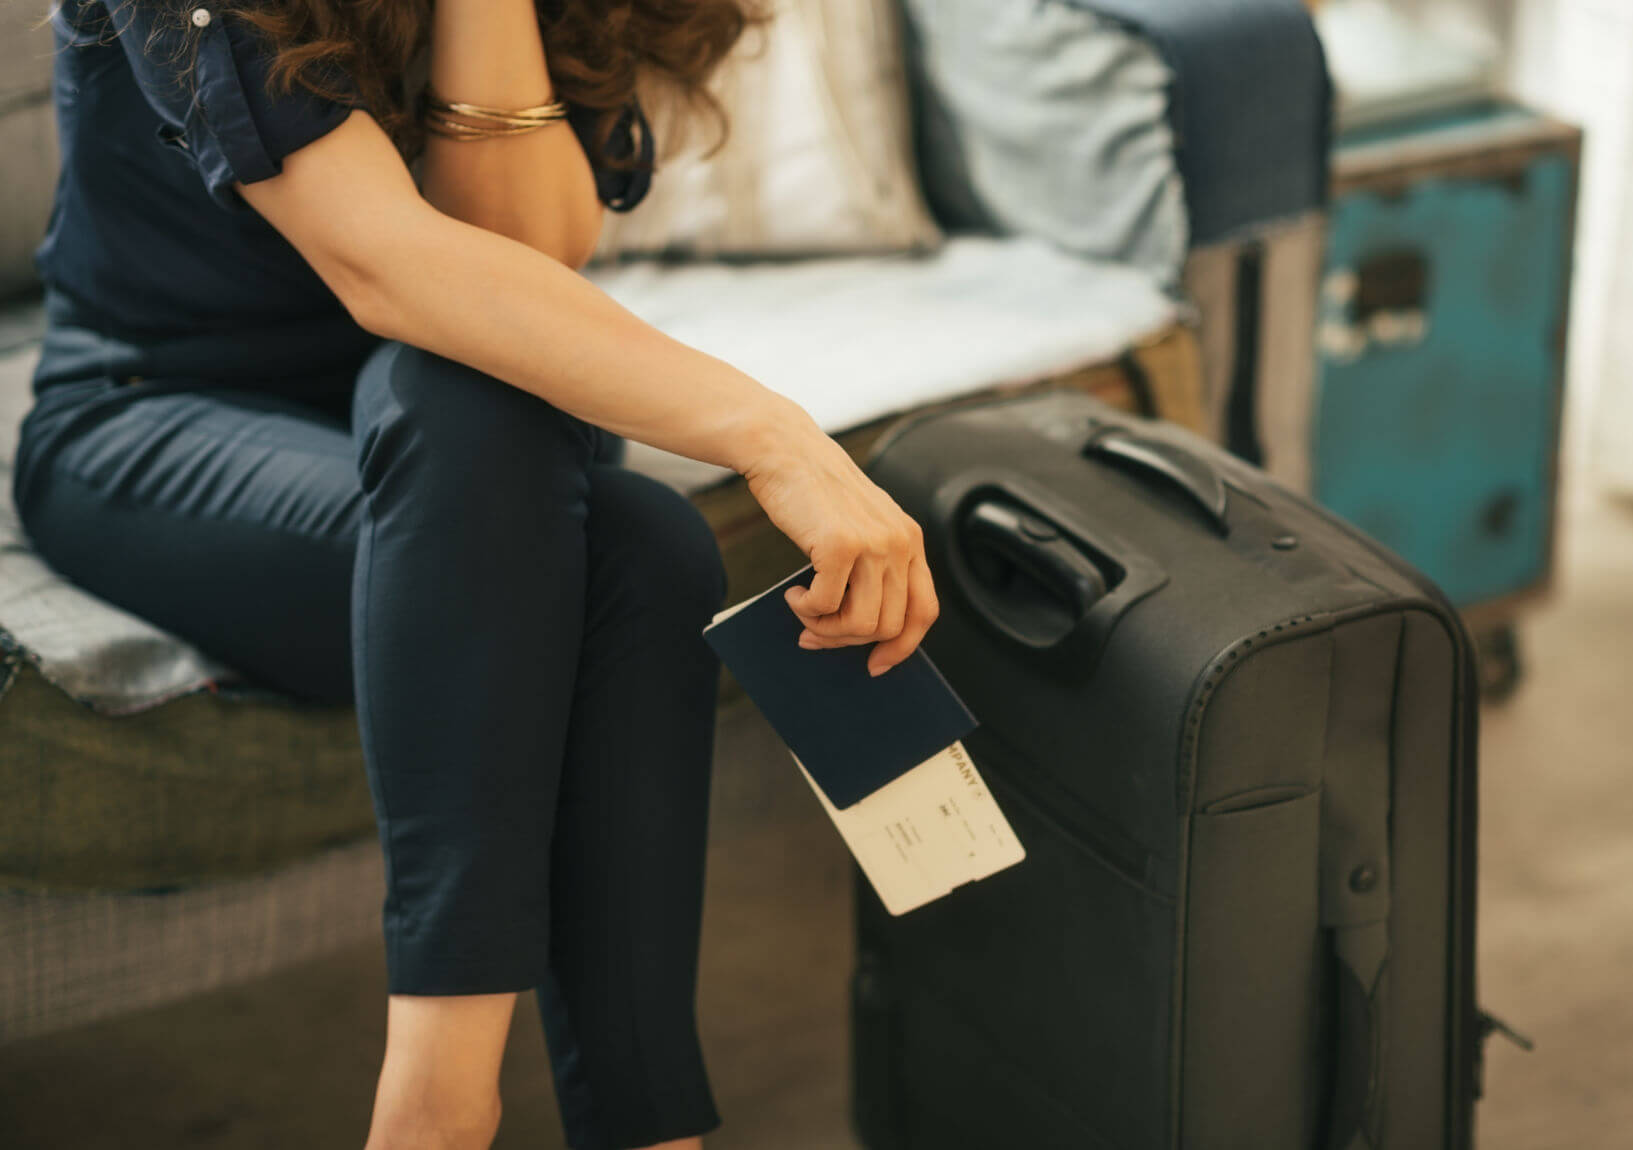 Travel Packing List For Dummies: Use Carry-on Luggage For EVERY Trip